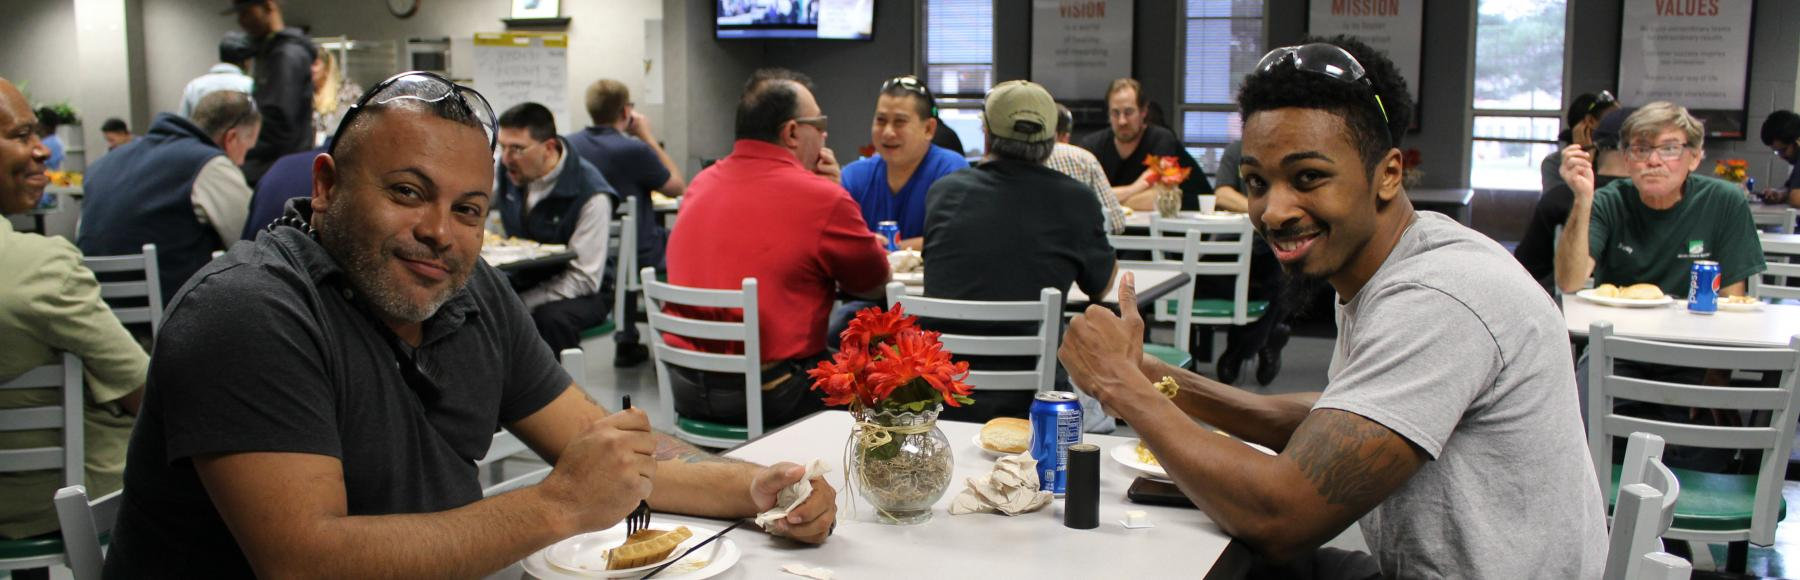 Two men sit at a table in a cafeteria.  They are smiling at the camera while enjoying a Thanksgiving meal.  In the background are more tables with more employees eating meals.